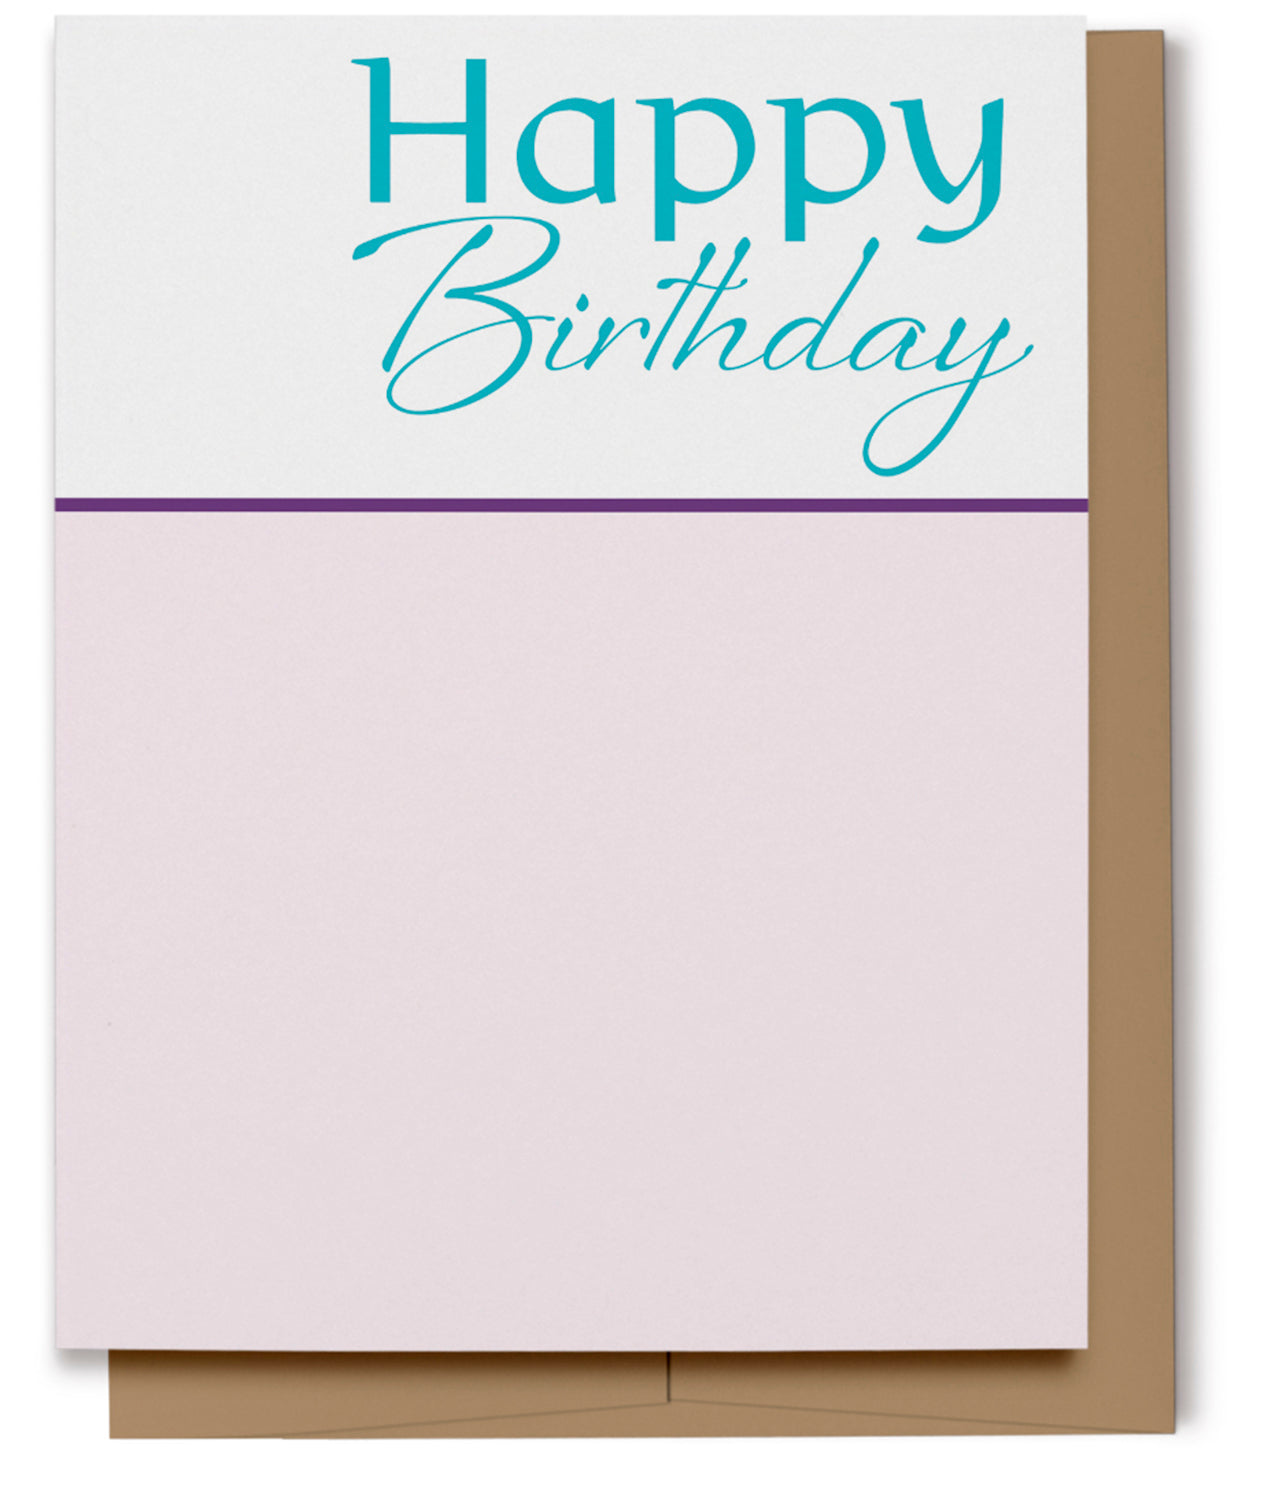 Happy Birthday Card - Aqua & Pink (100% Recycled)